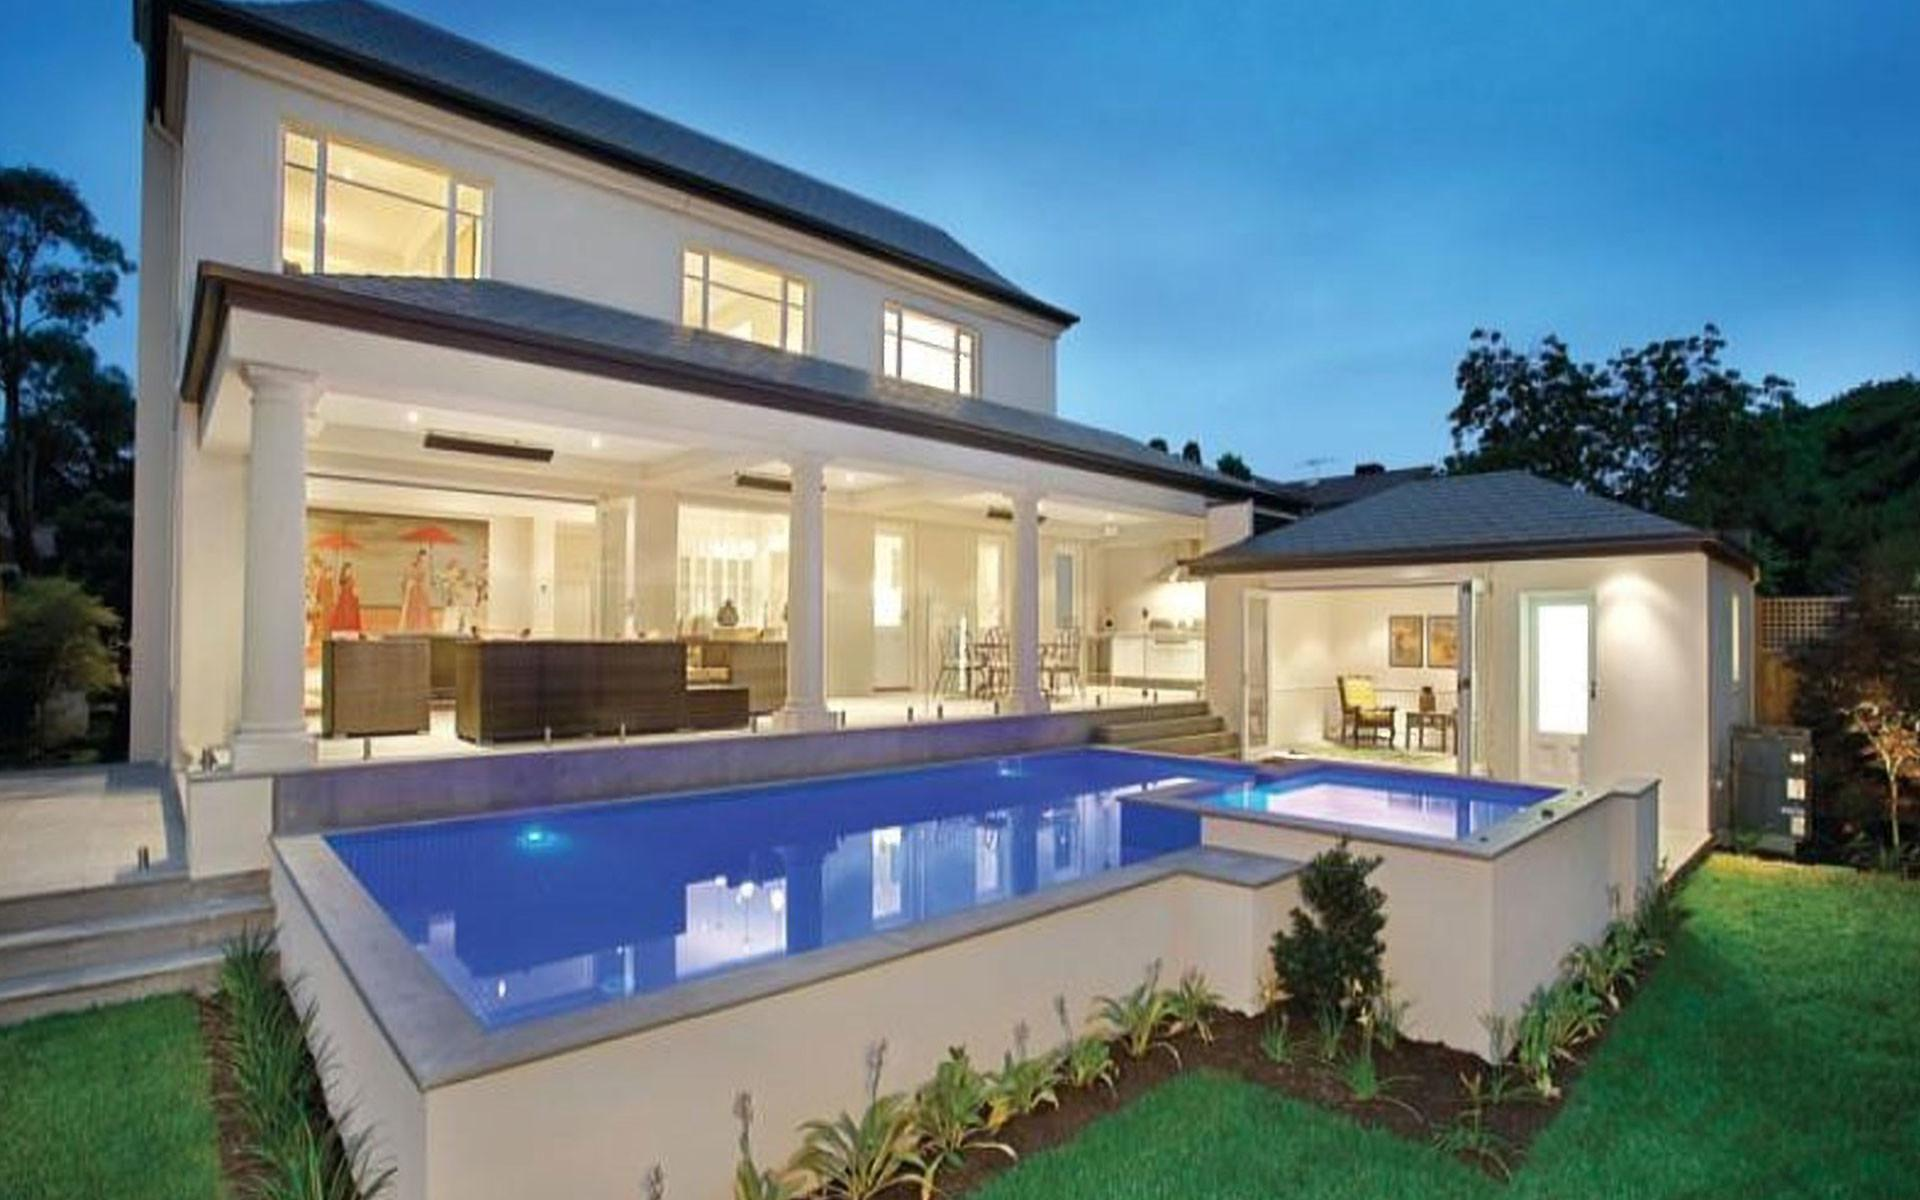 Home Swimming Pools Melbourne Ultimate